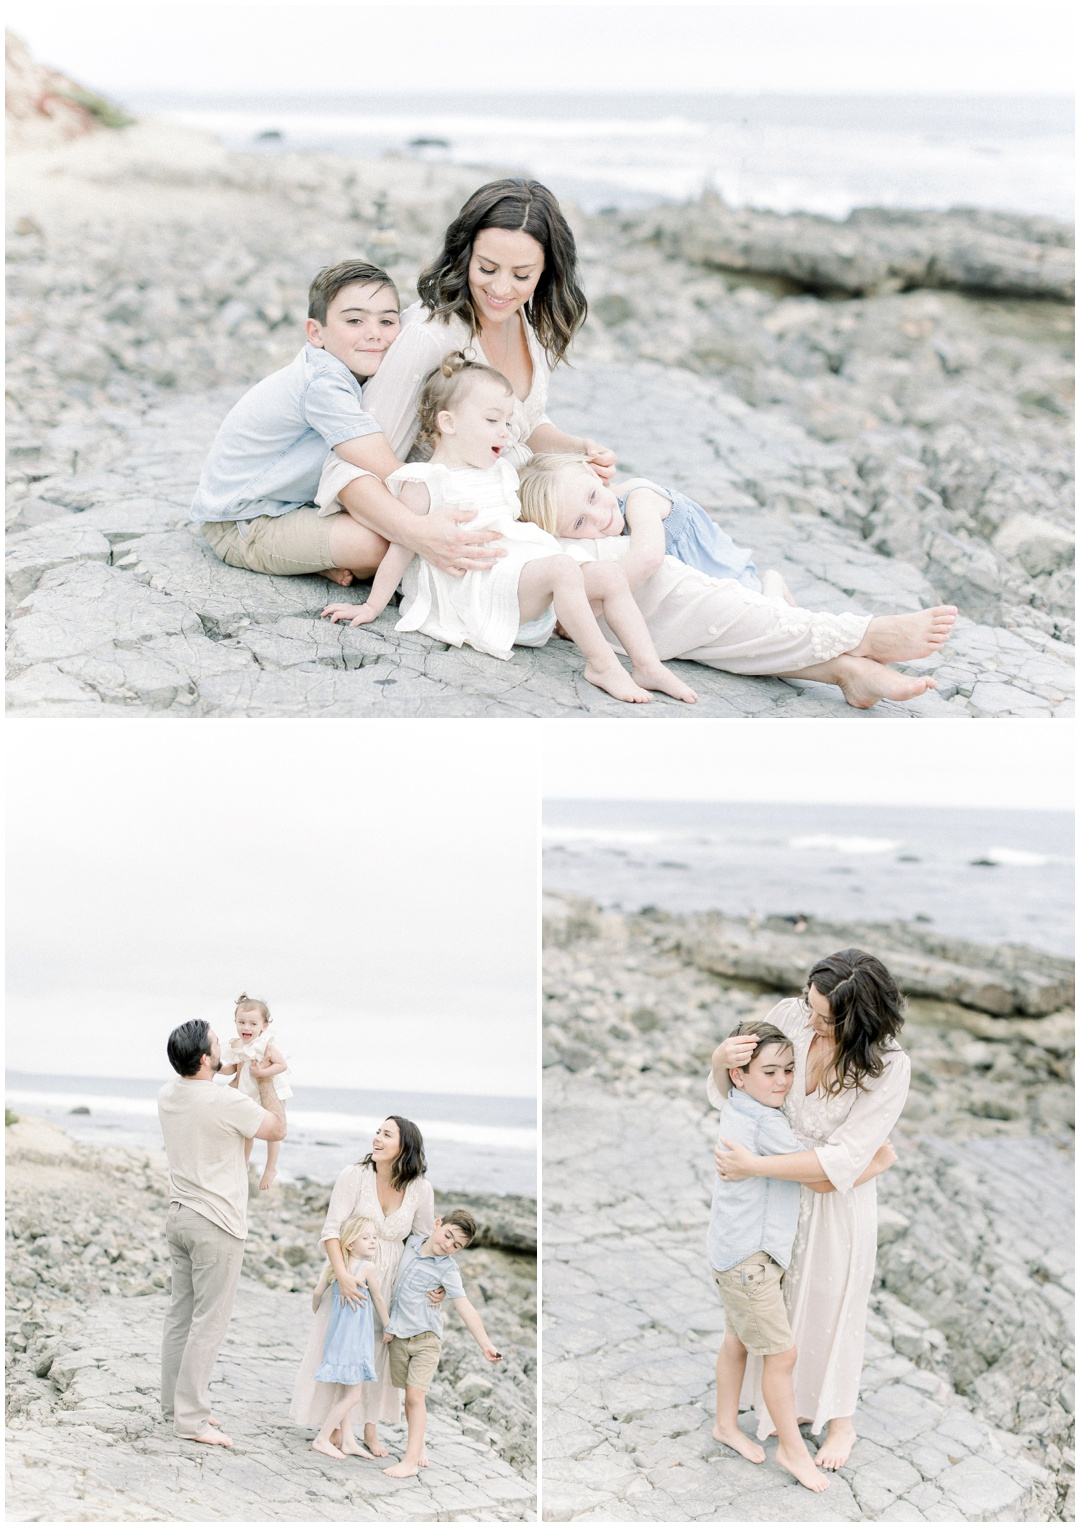 Newport_Beach_Newborn_Light_Airy_Natural_Photographer_Newport_Beach_Photographer_Orange_County_Family_Photographer_Cori_Kleckner_Photography_Newport_Beach_Photographer_Alexis_McElwee__4024.jpg